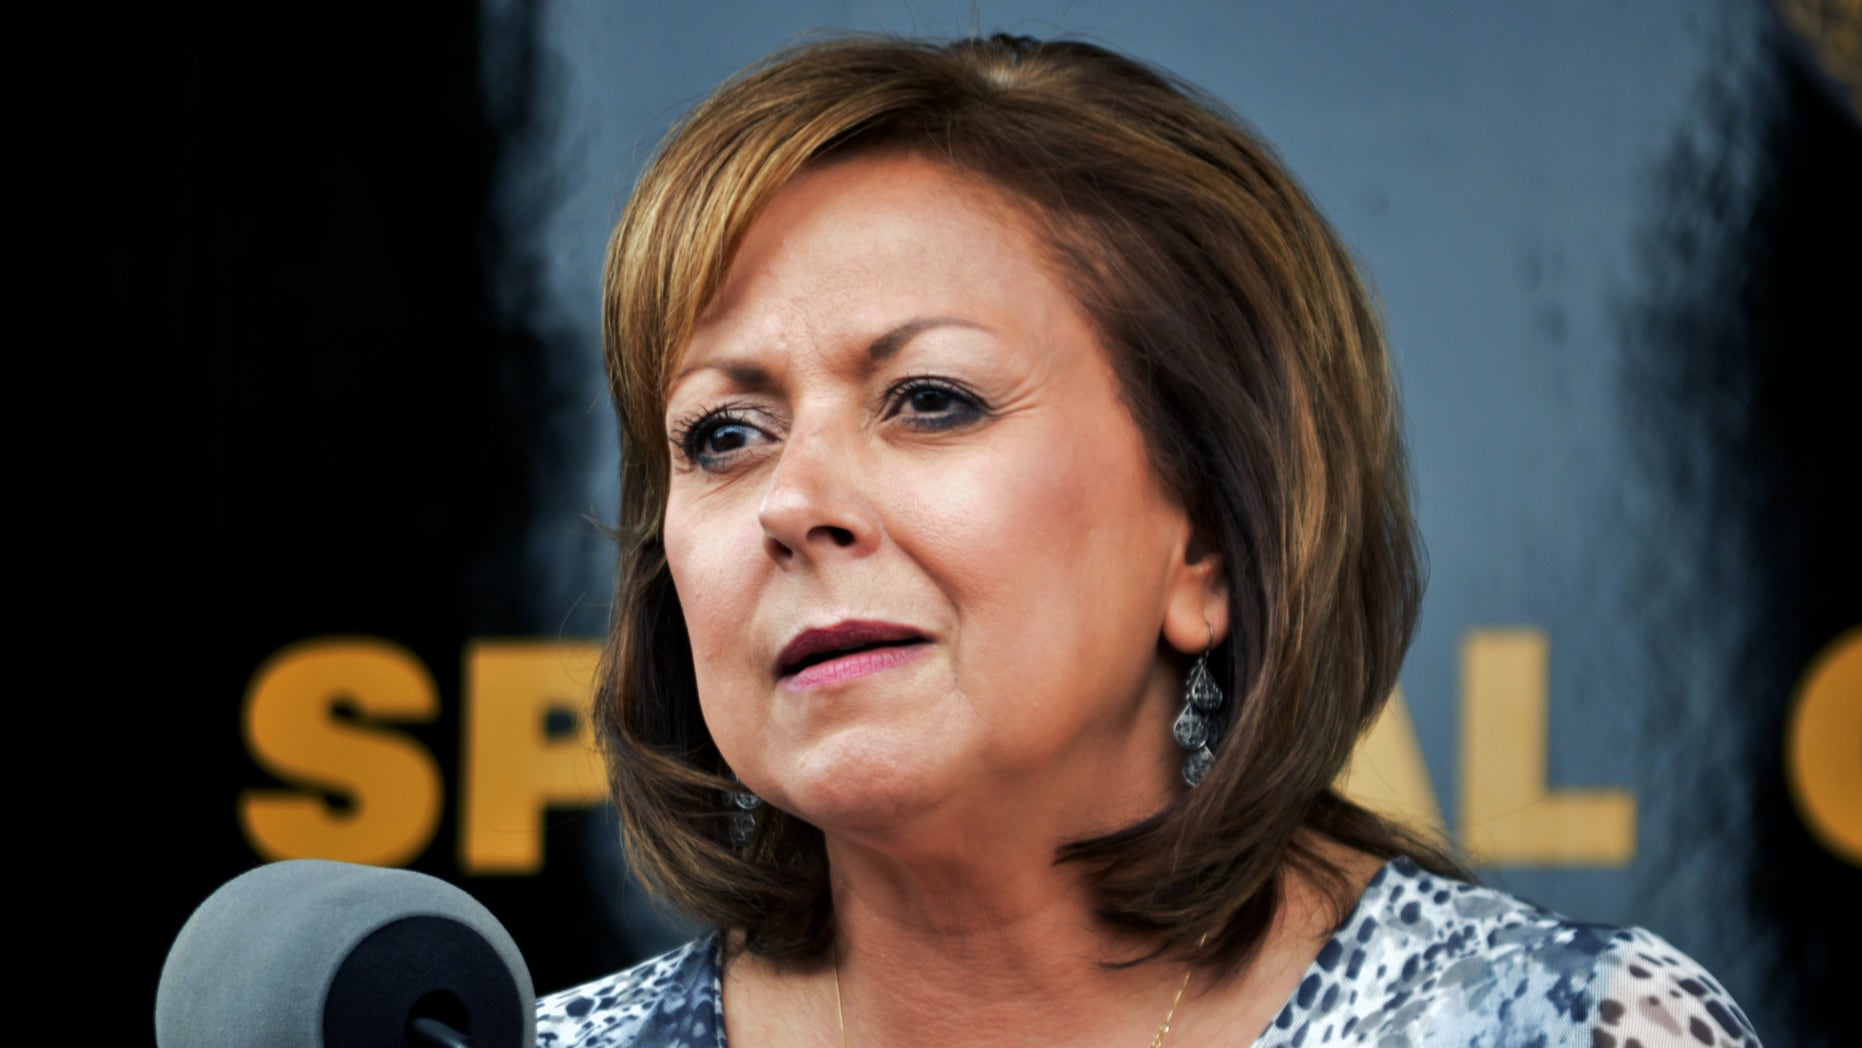 "FILE - This Sept. 4, 2015 file photo New Mexico Gov. Susana Martinez speaks at a press conference Albuquerque, N.M. Martinez says she's confident a close political adviser, Jay McCleskey, did nothing wrong and called allegations of fundraising violations ""cheap shots."" The Republican governor told The Associated Press in a statement that she's aware of complaints being raised and said they came from political opponents who have tried to attack her previously. (AP Photo/Russell Contreras,File)"